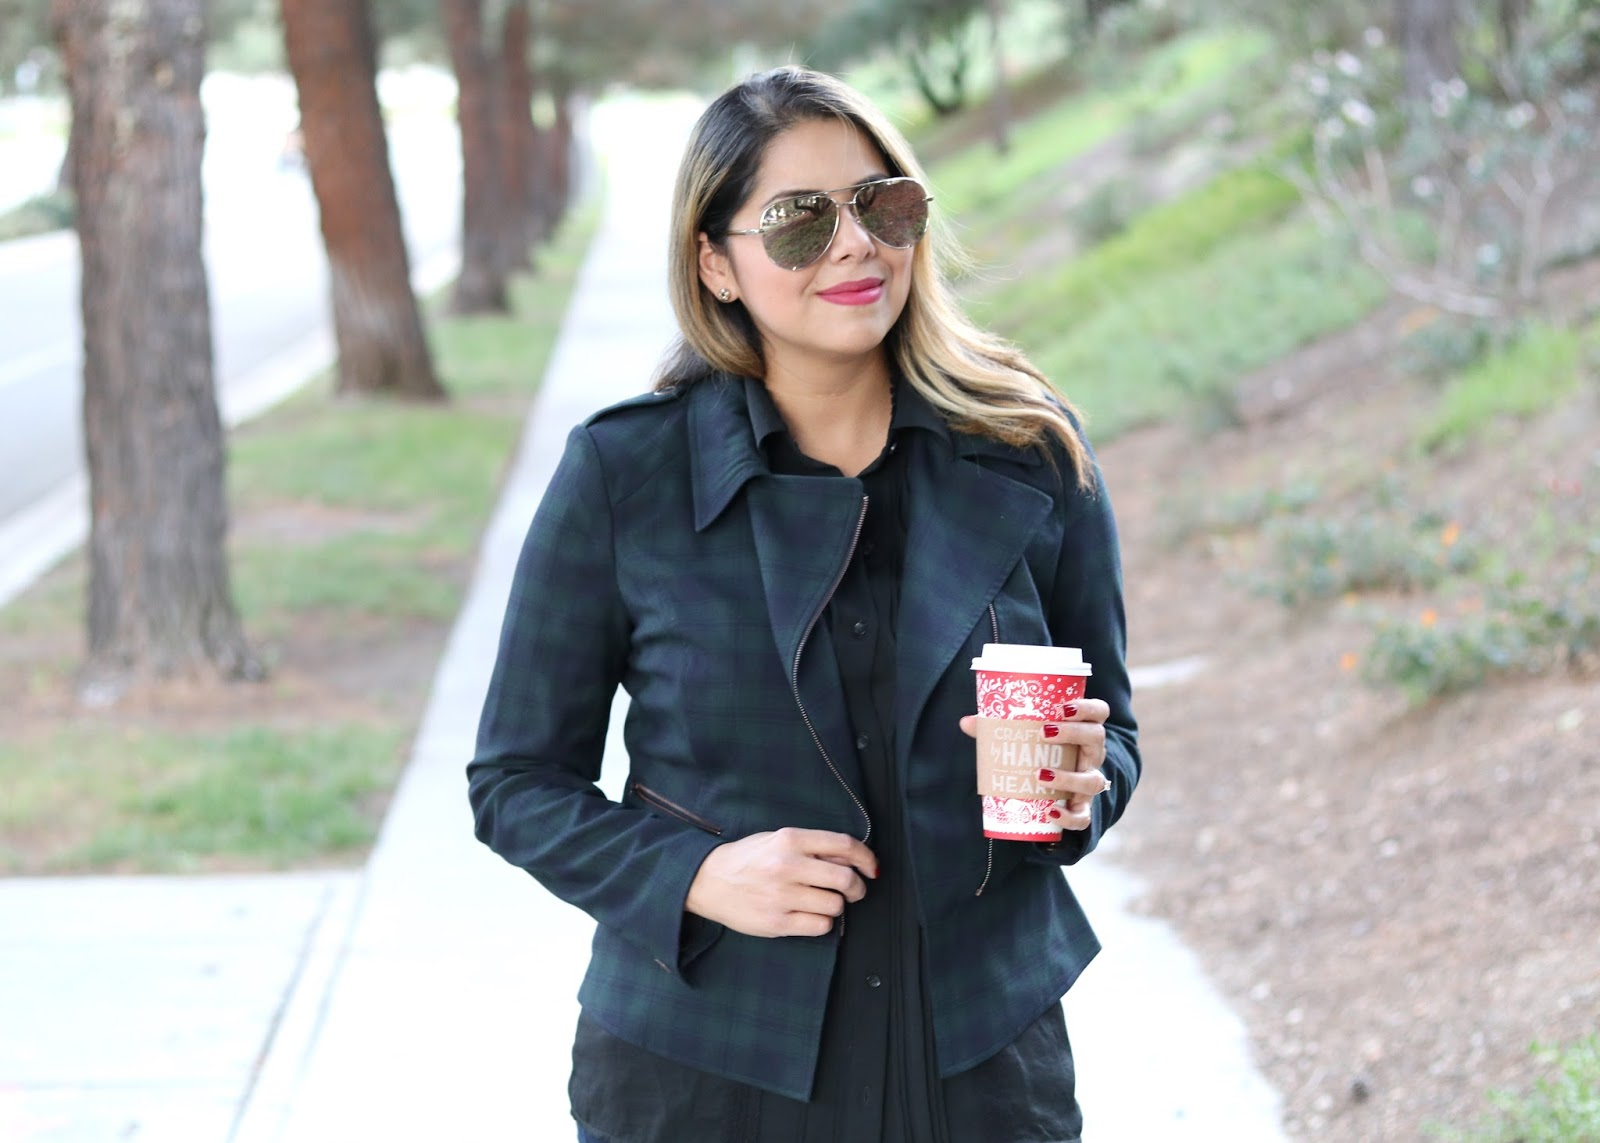 quay x desi sunglasses, mac liptensity lipstick, latina fashion blogger, mexican fashion blogger